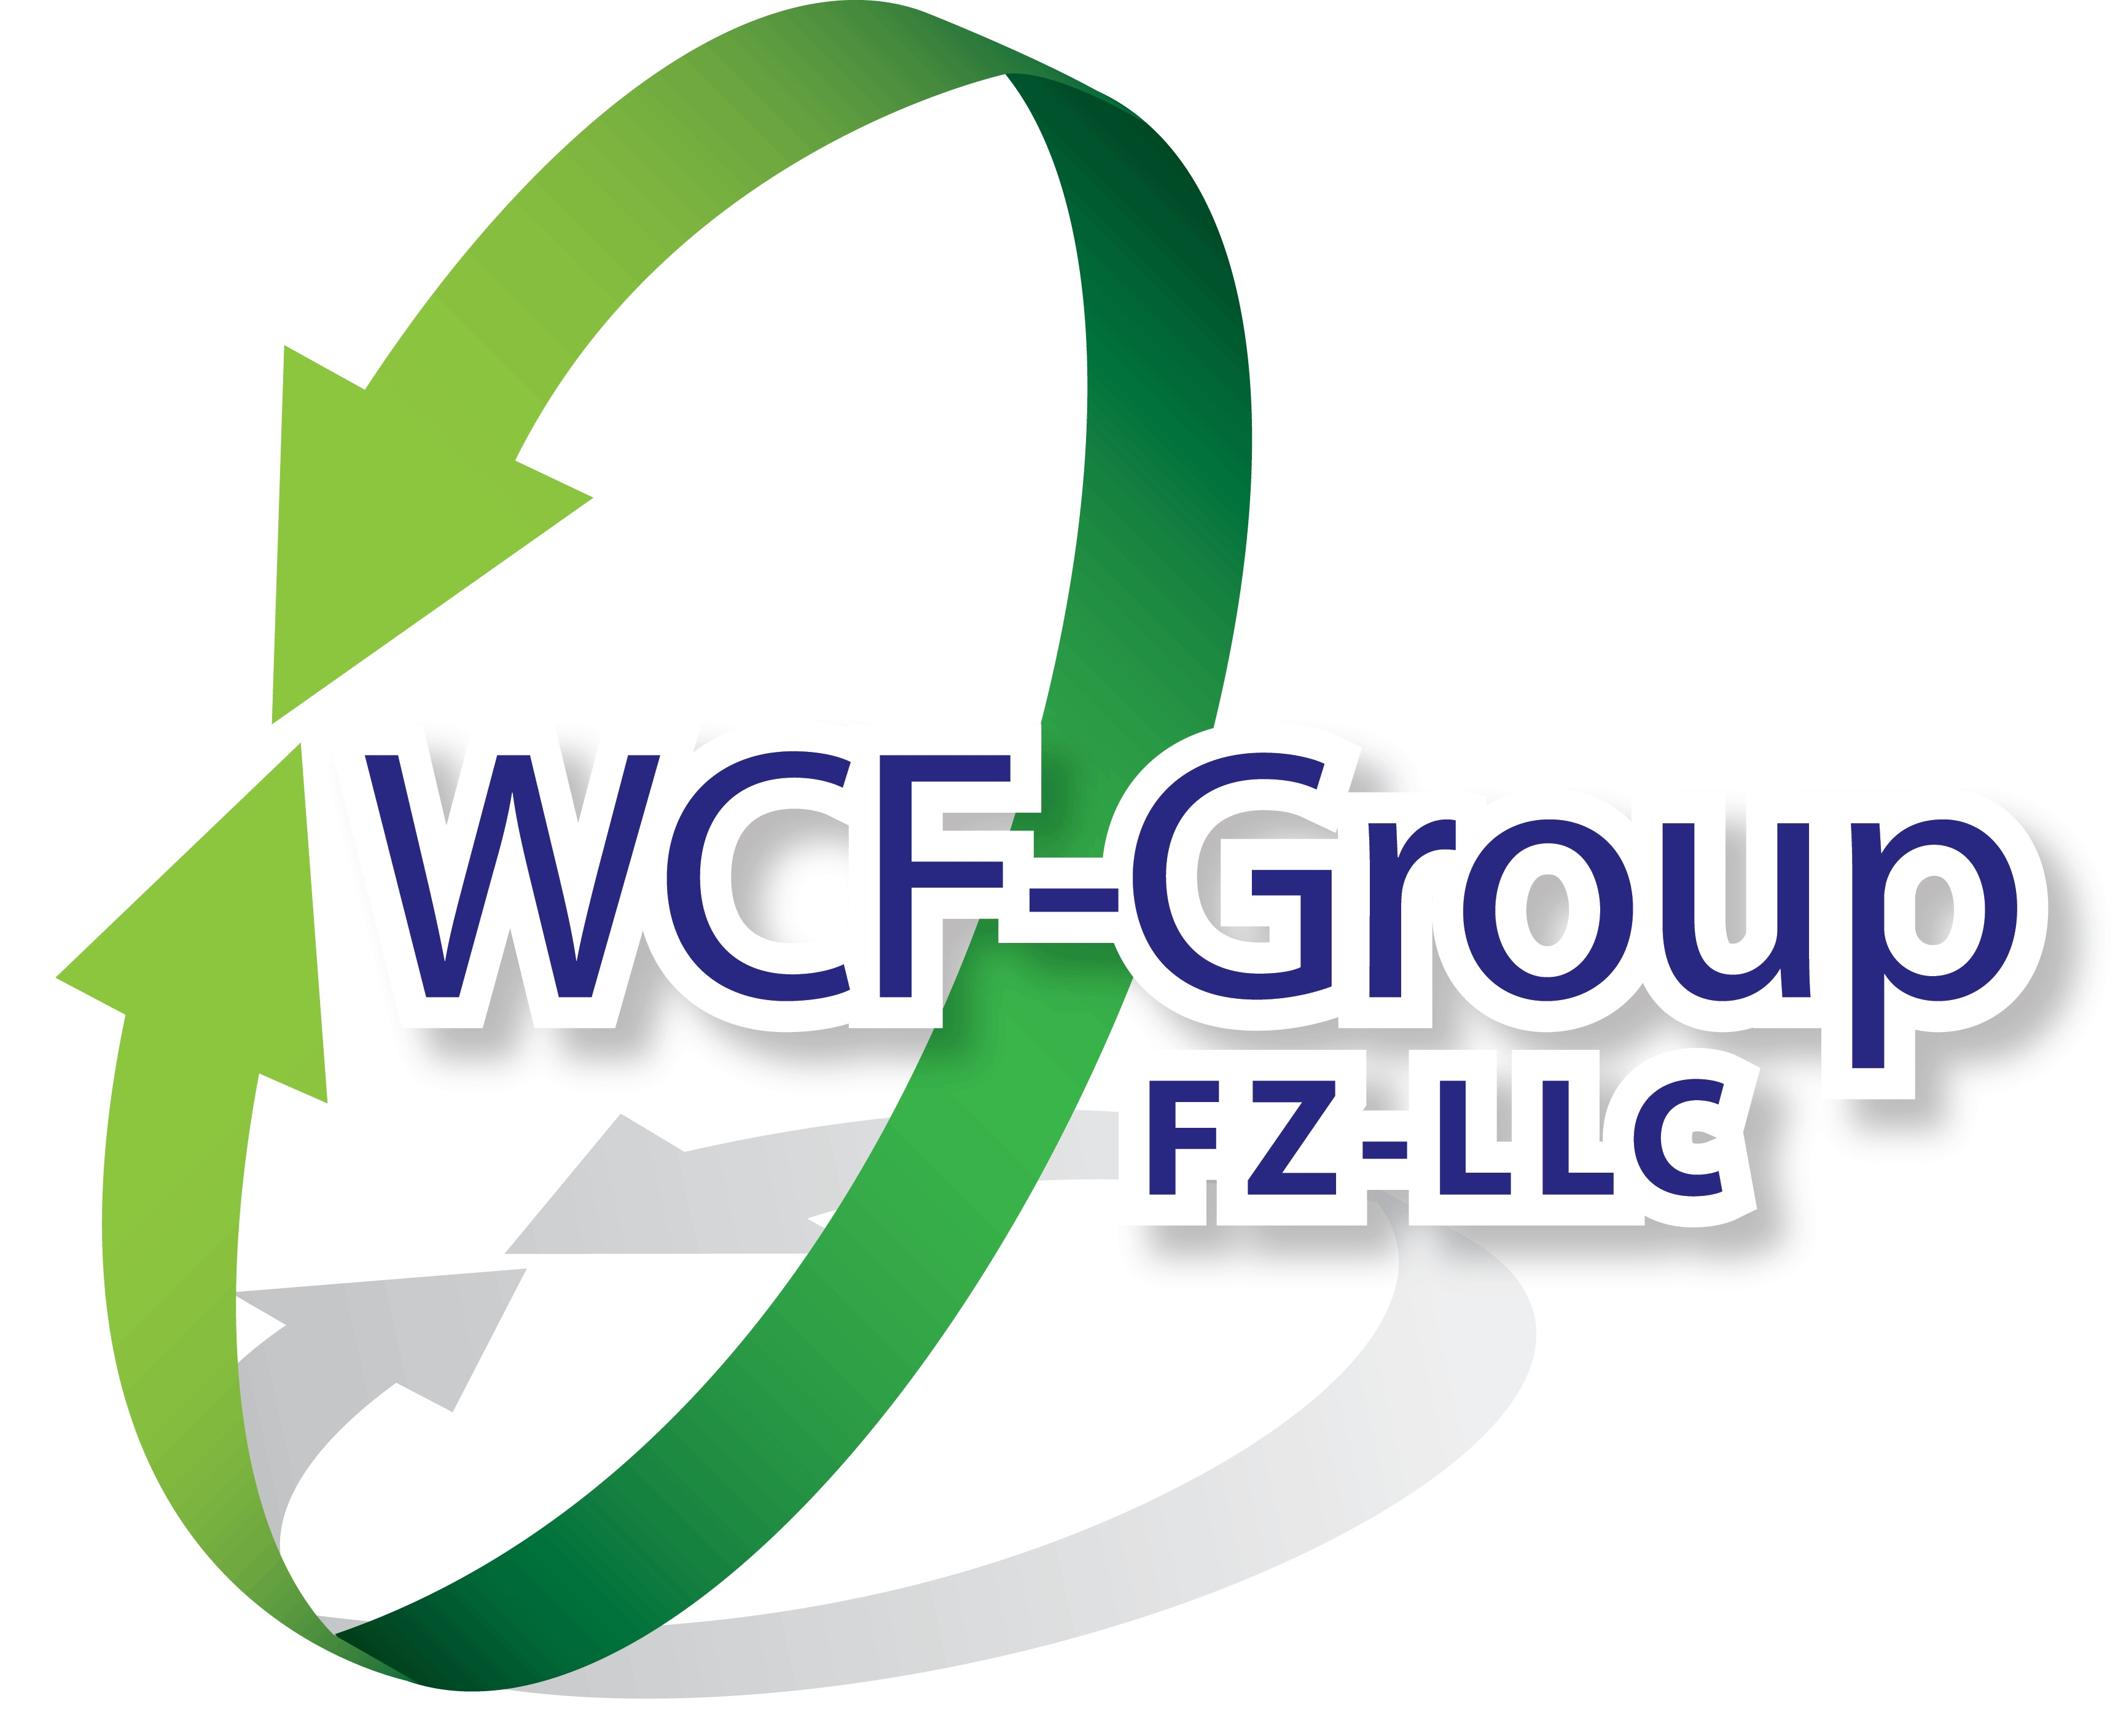 WCF Group FZ-LLC